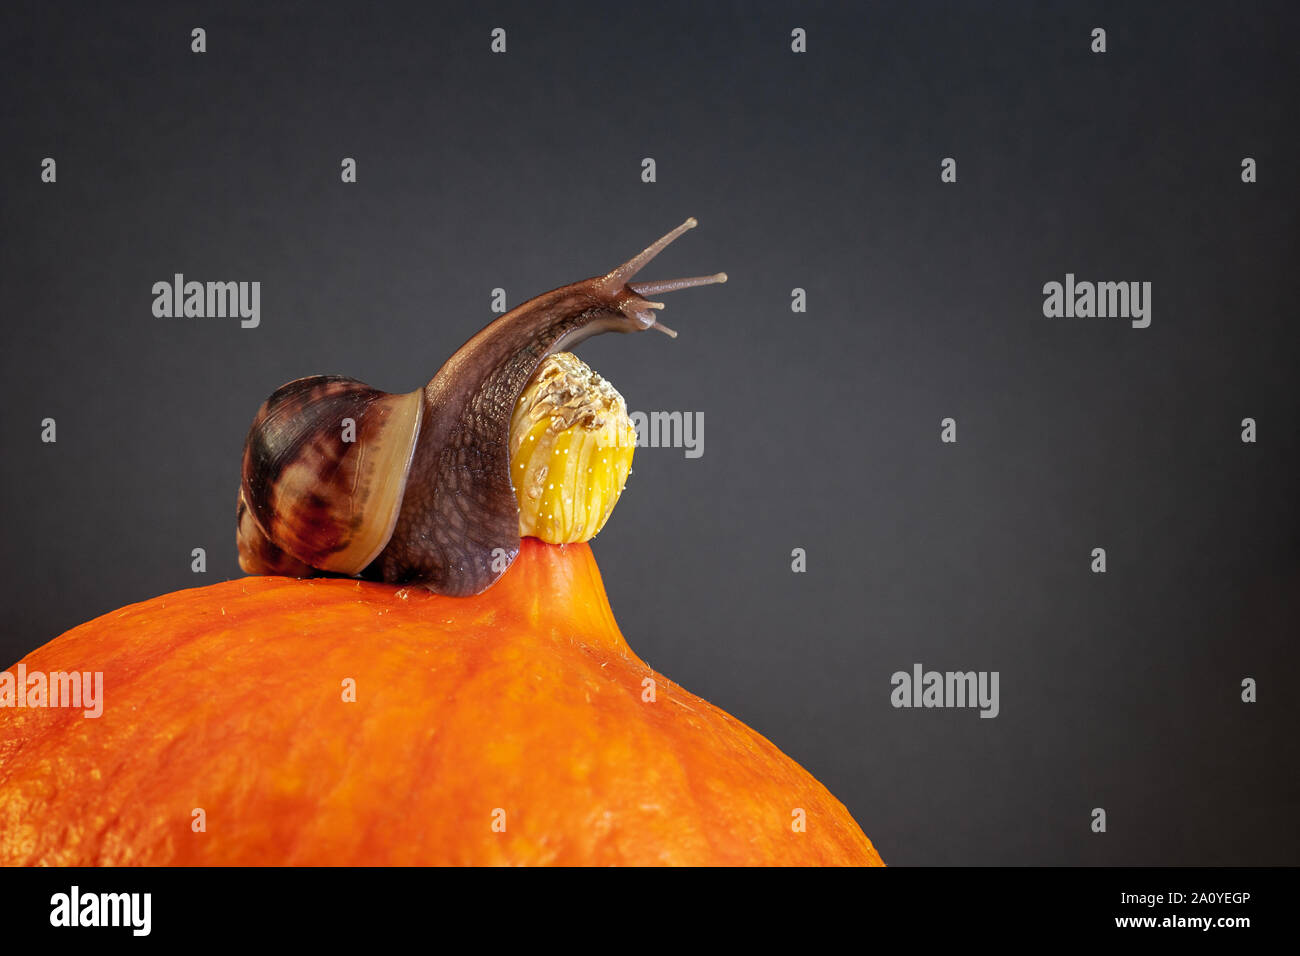 Snail with long tentacles on a pumpkin. The pumpkin is orange, the snail is brown. Elongated neck. Copy space. Vignette. Stock Photo